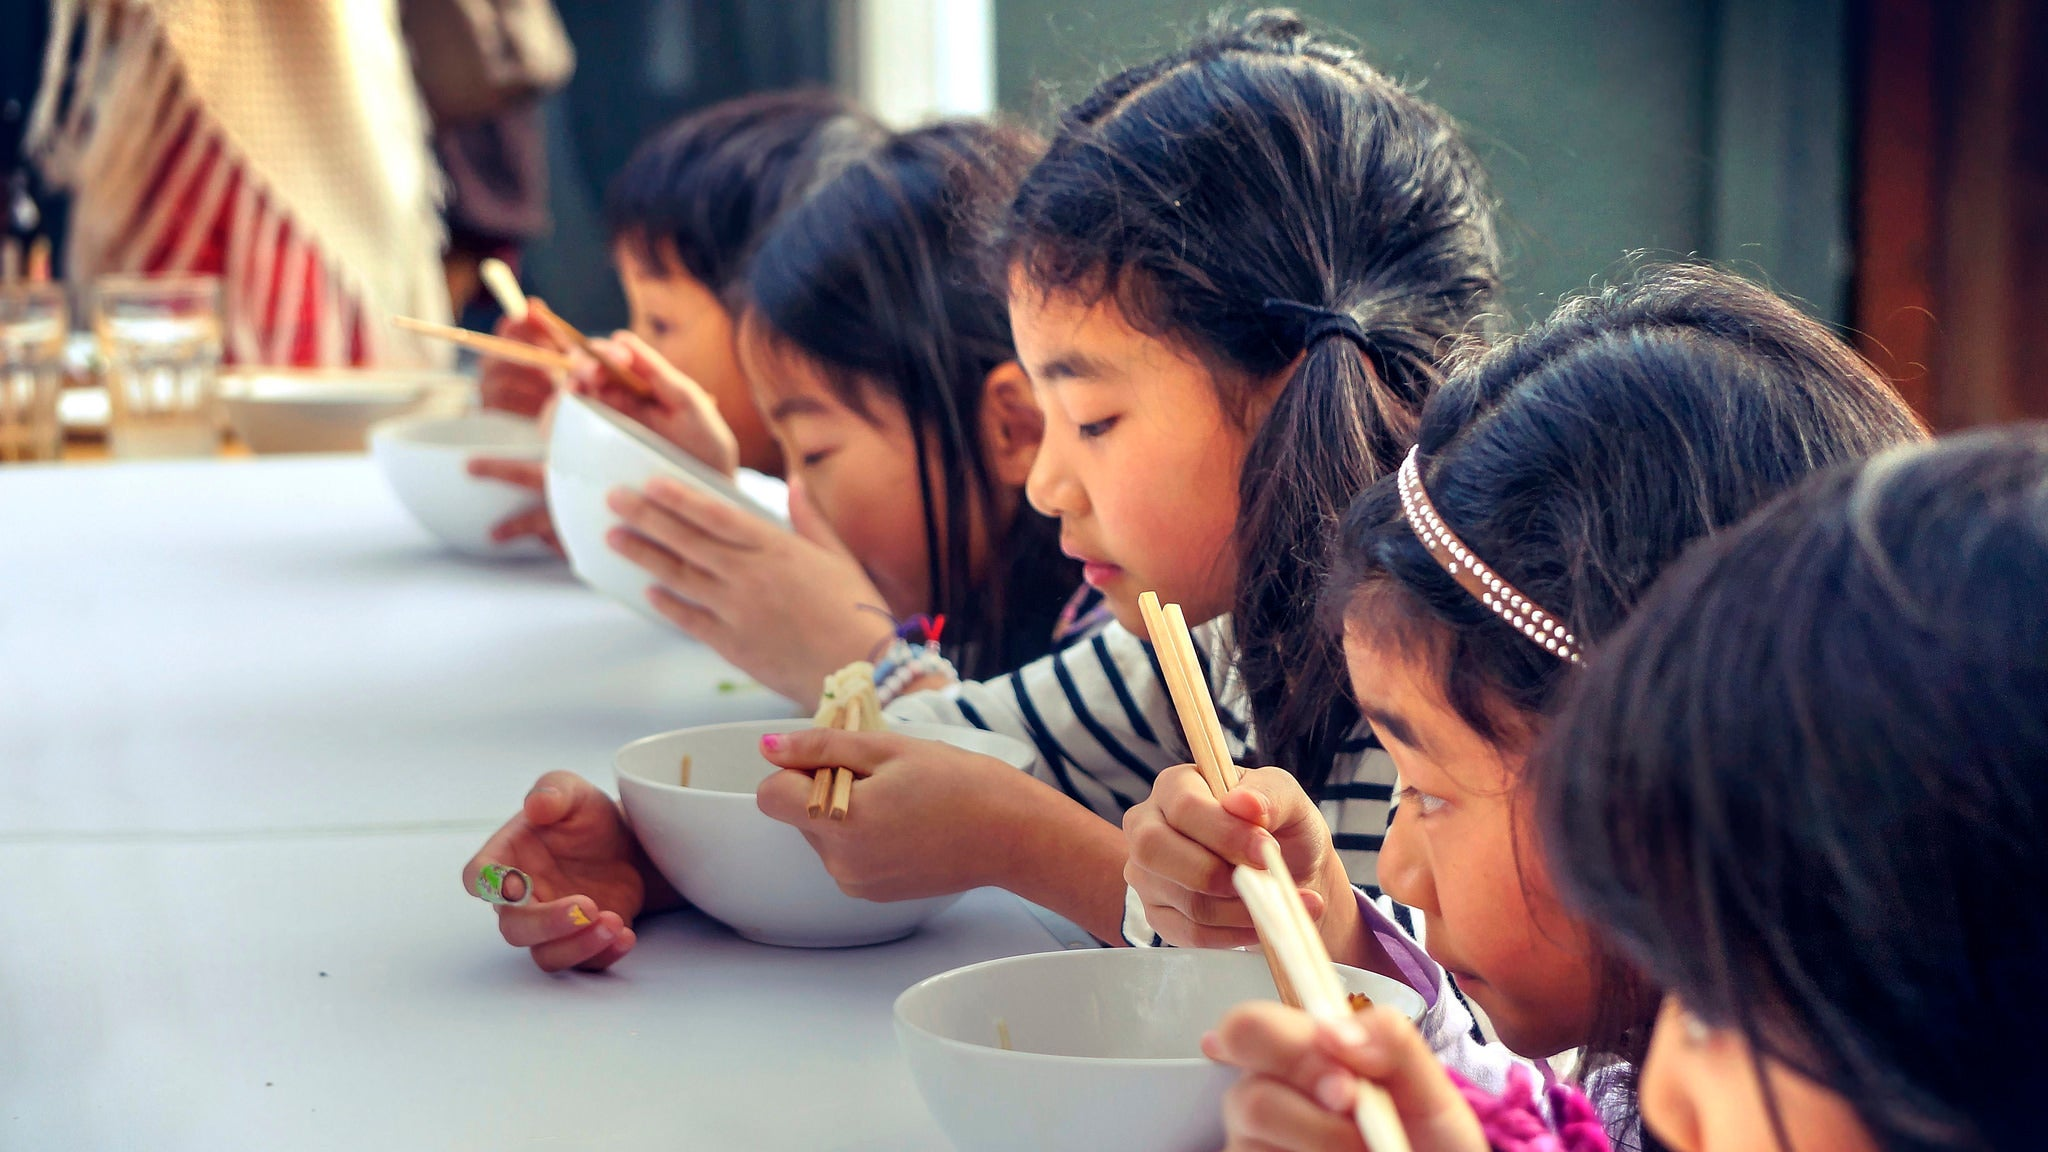 How To Get Kids To Eat Their Vegetables, According To Science